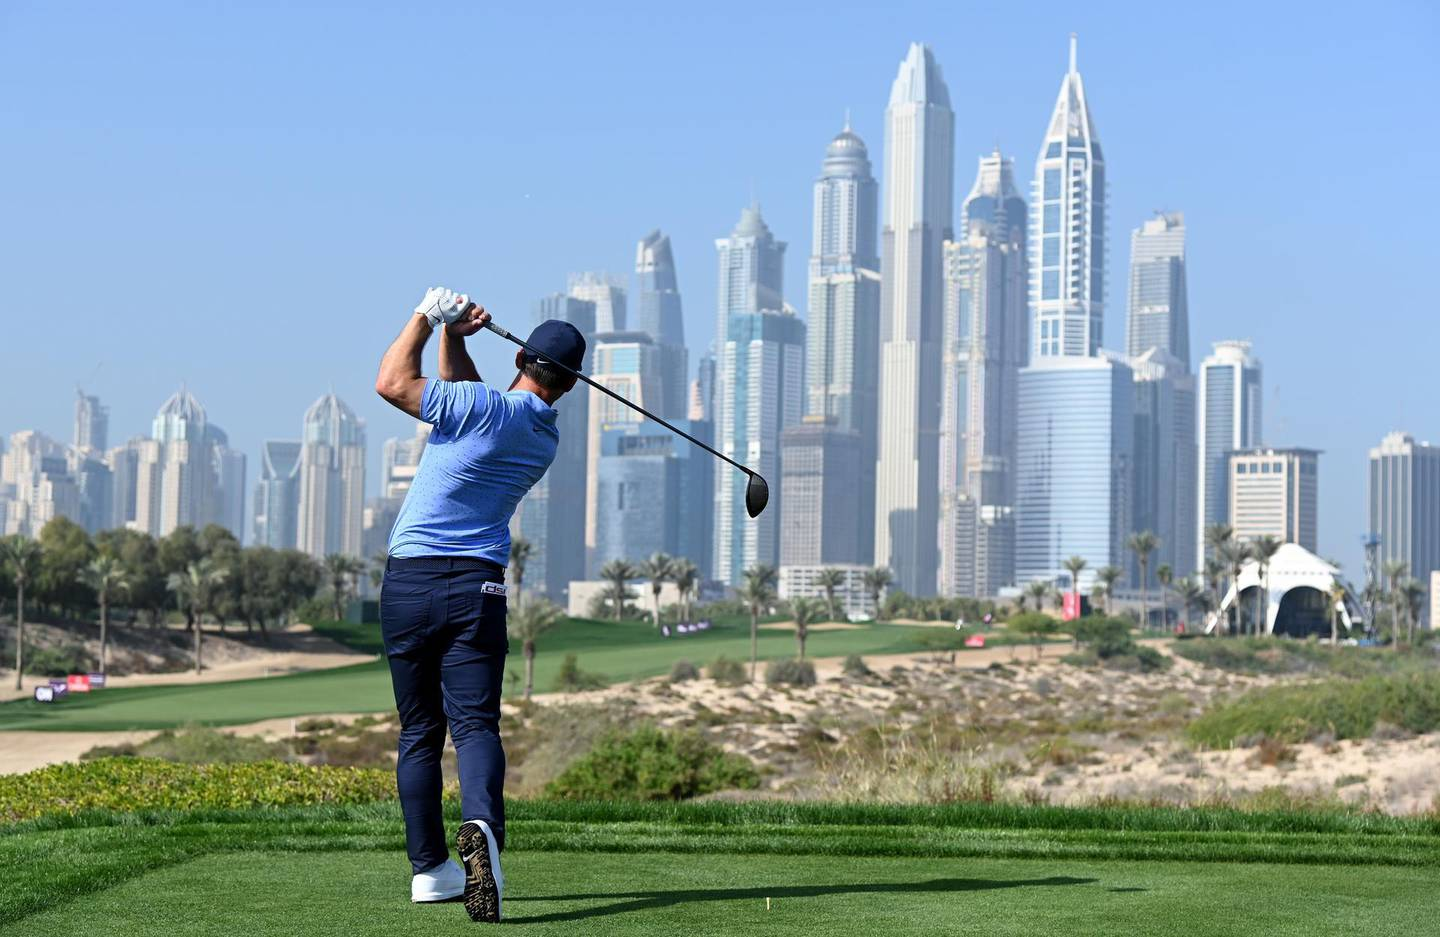 DUBAI, UNITED ARAB EMIRATES - JANUARY 27: Paul Casey of England in action during the pro-am event prior to the Omega Dubai Desert Classic at Emirates Golf Club on January 27, 2021 in Dubai, United Arab Emirates. (Photo by Ross Kinnaird/Getty Images)